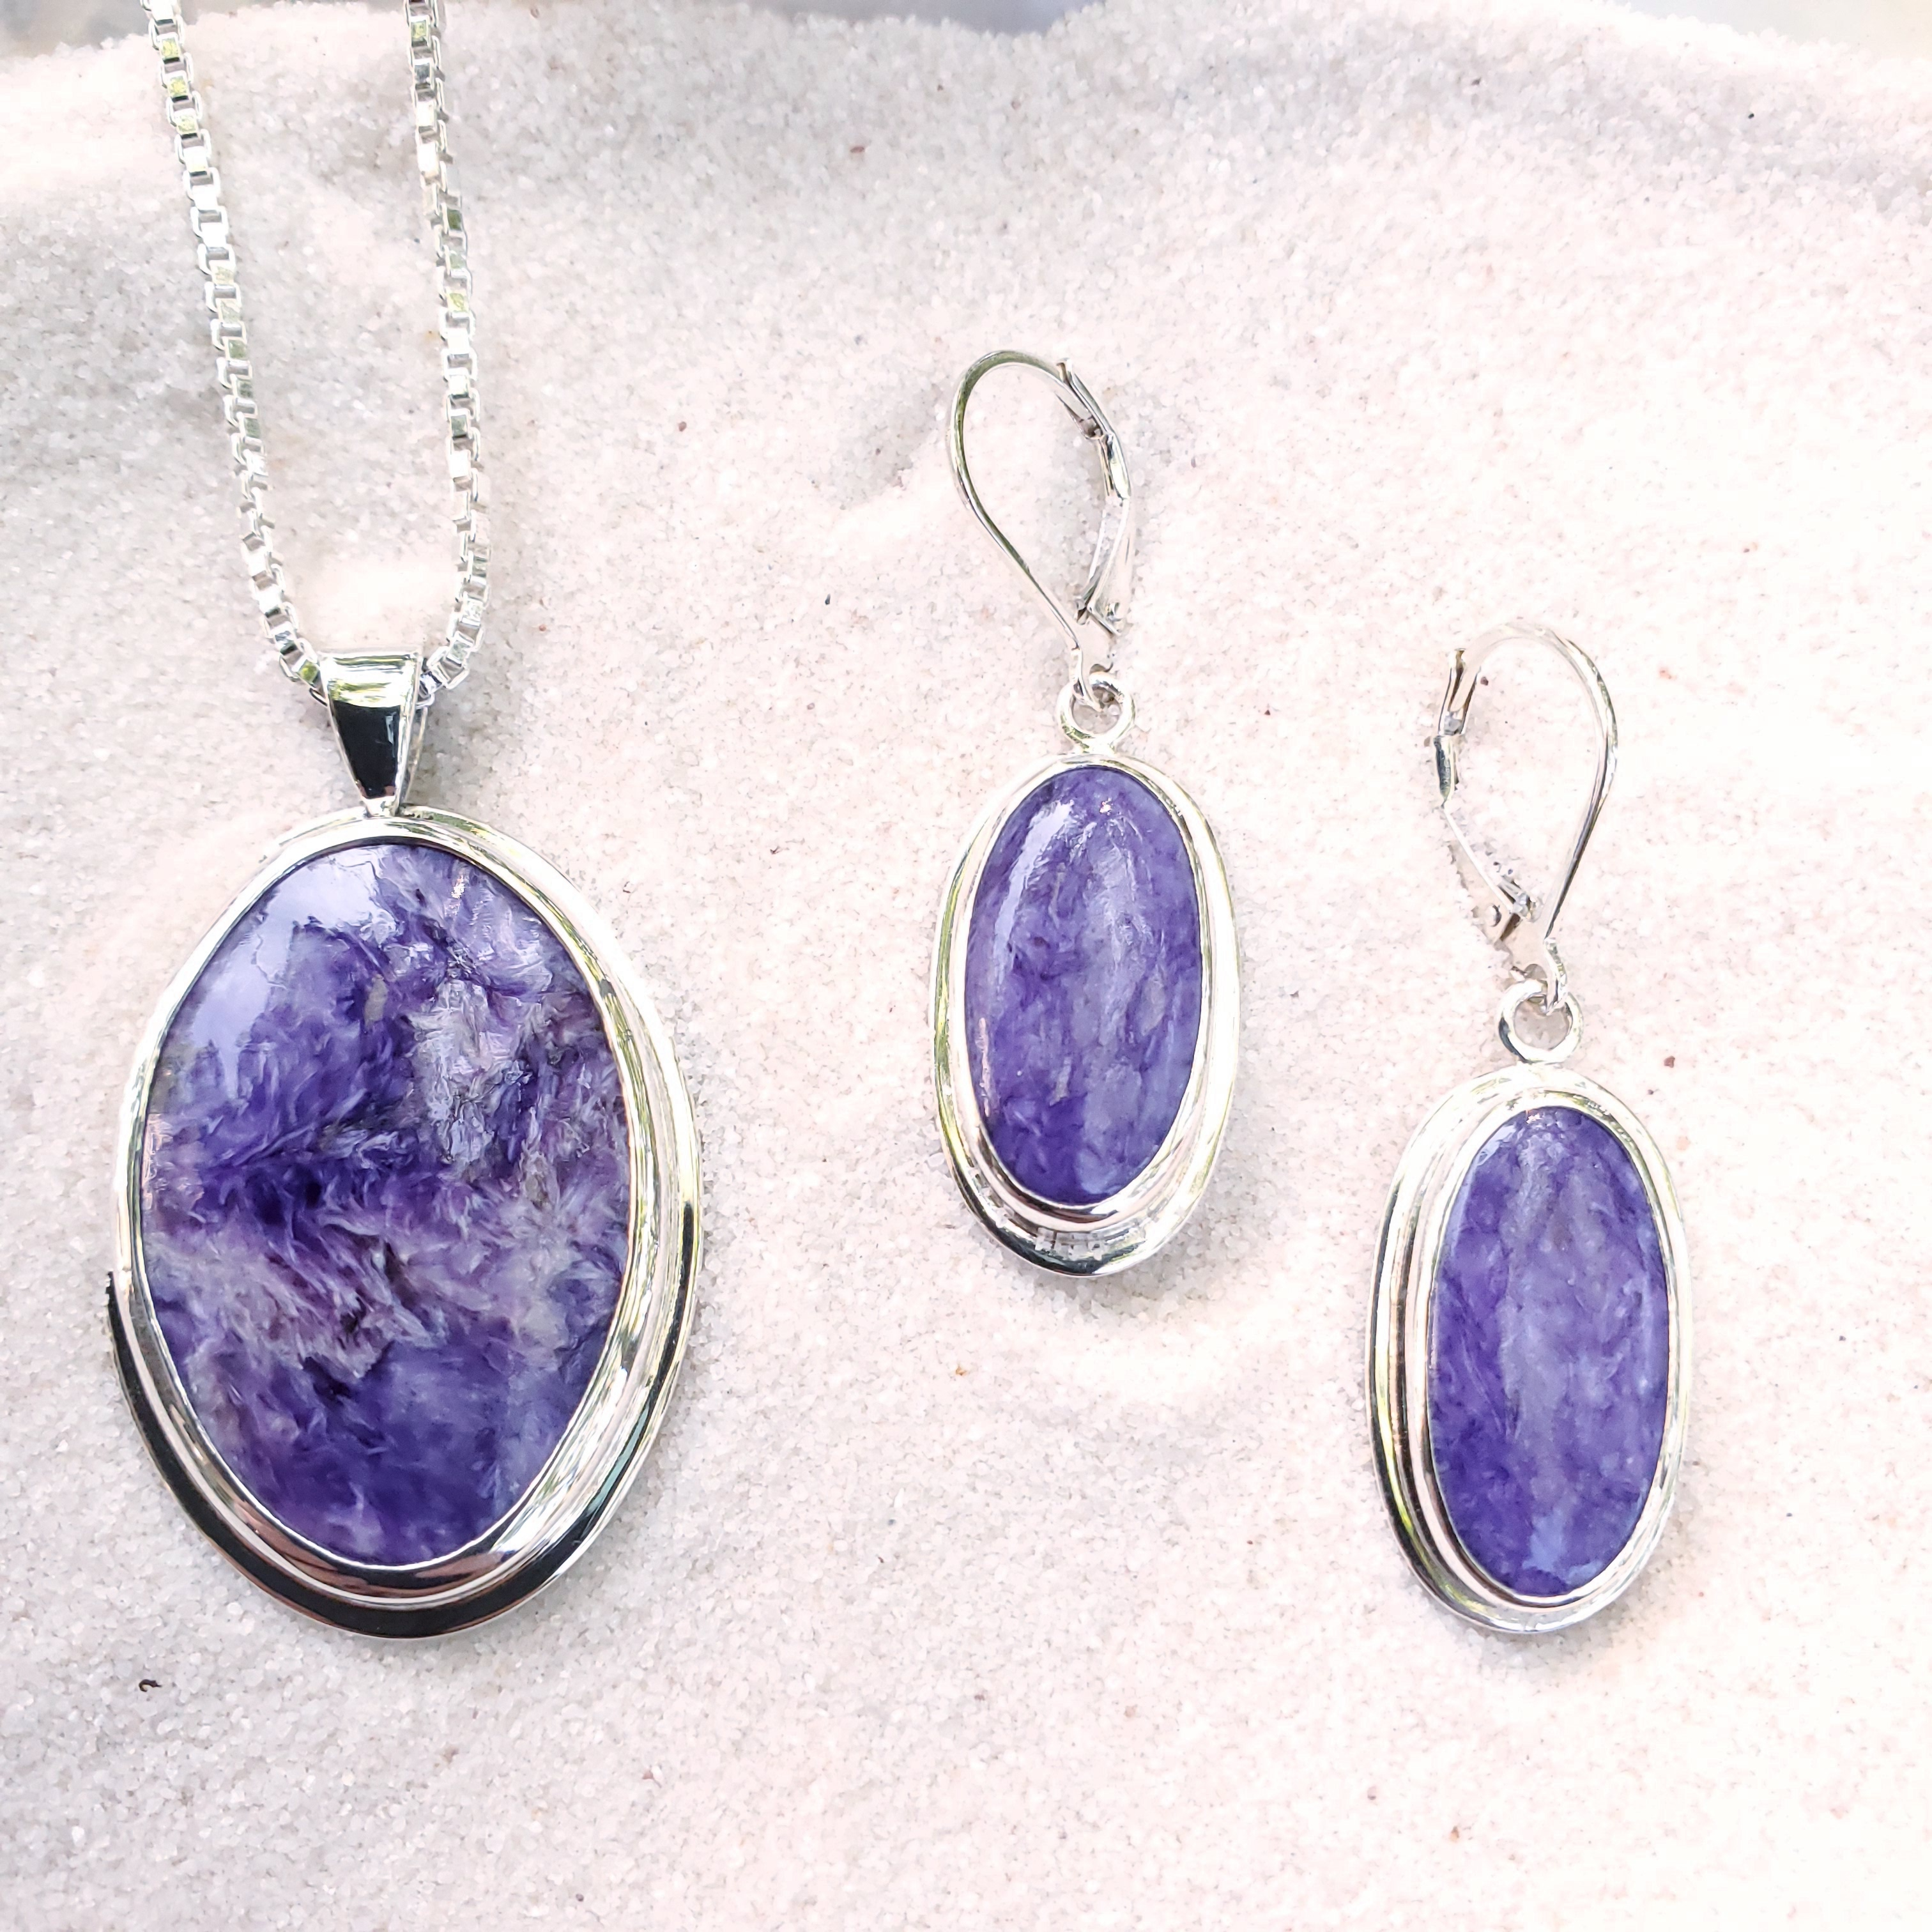 Purple Charoite necklace and earring set